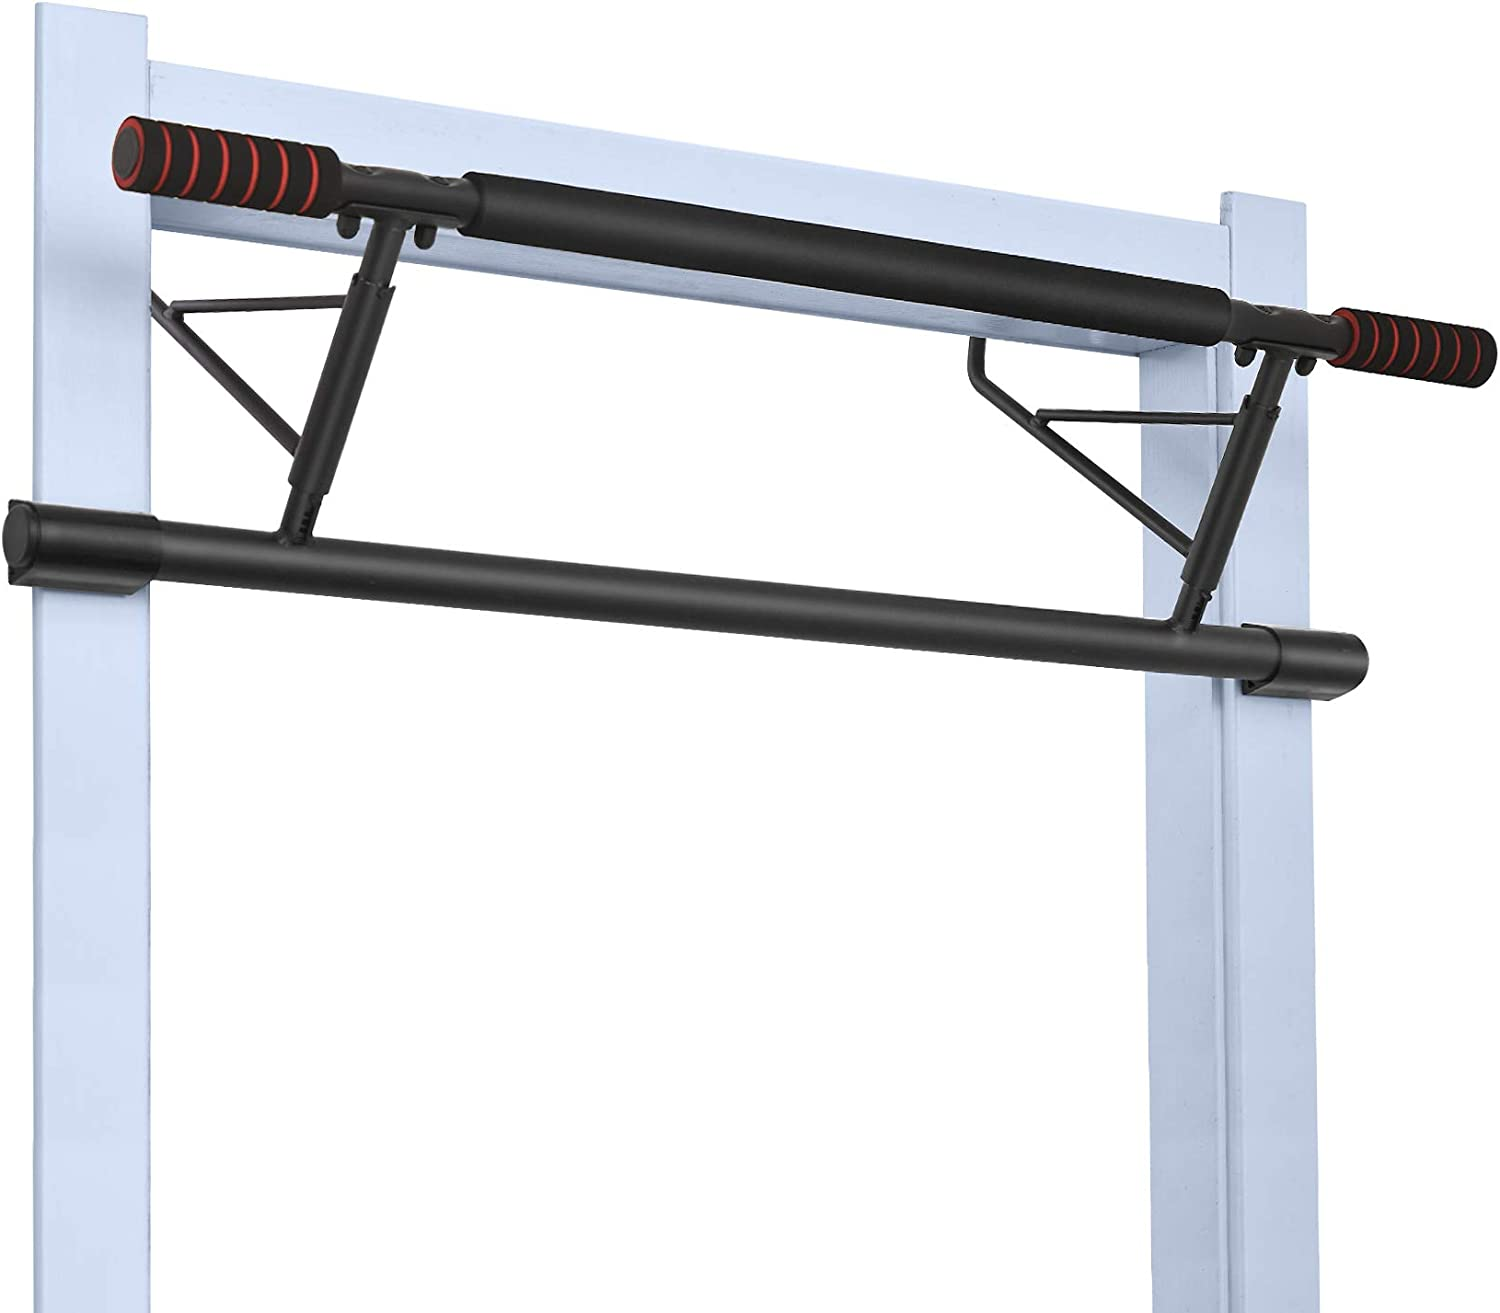 NBJStar Pull Up Bar with Smart Larger Hooks, Foldable 4 in 1 Chin-Up Bar for Home Gym, USA Shipping, No Assembly Required